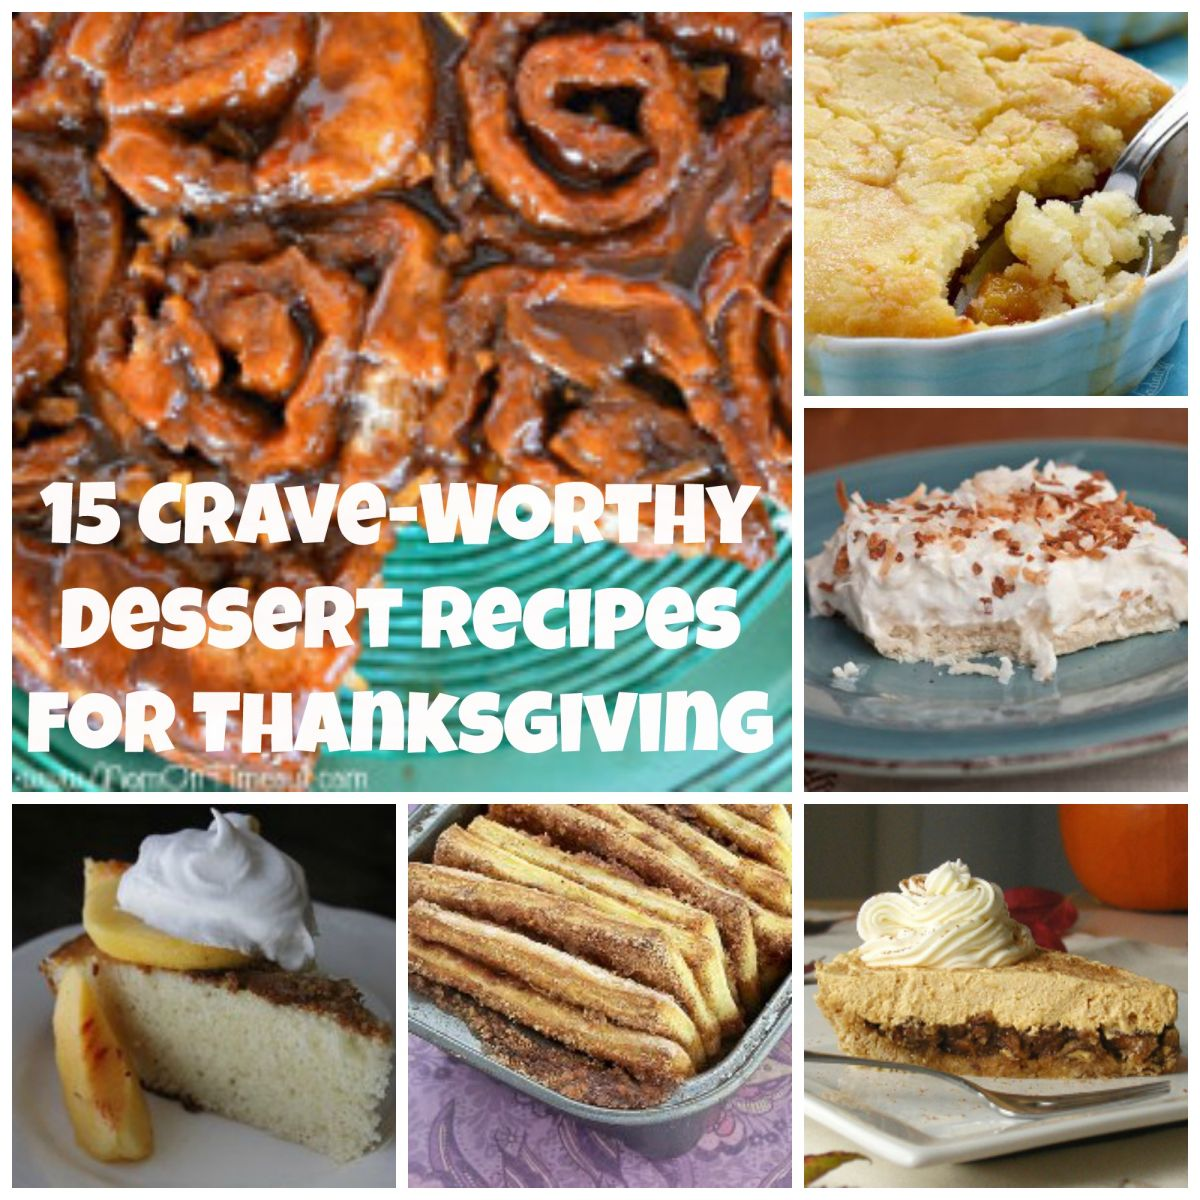 15 Crave-Worthy Dessert Recipes for Thanksgiving